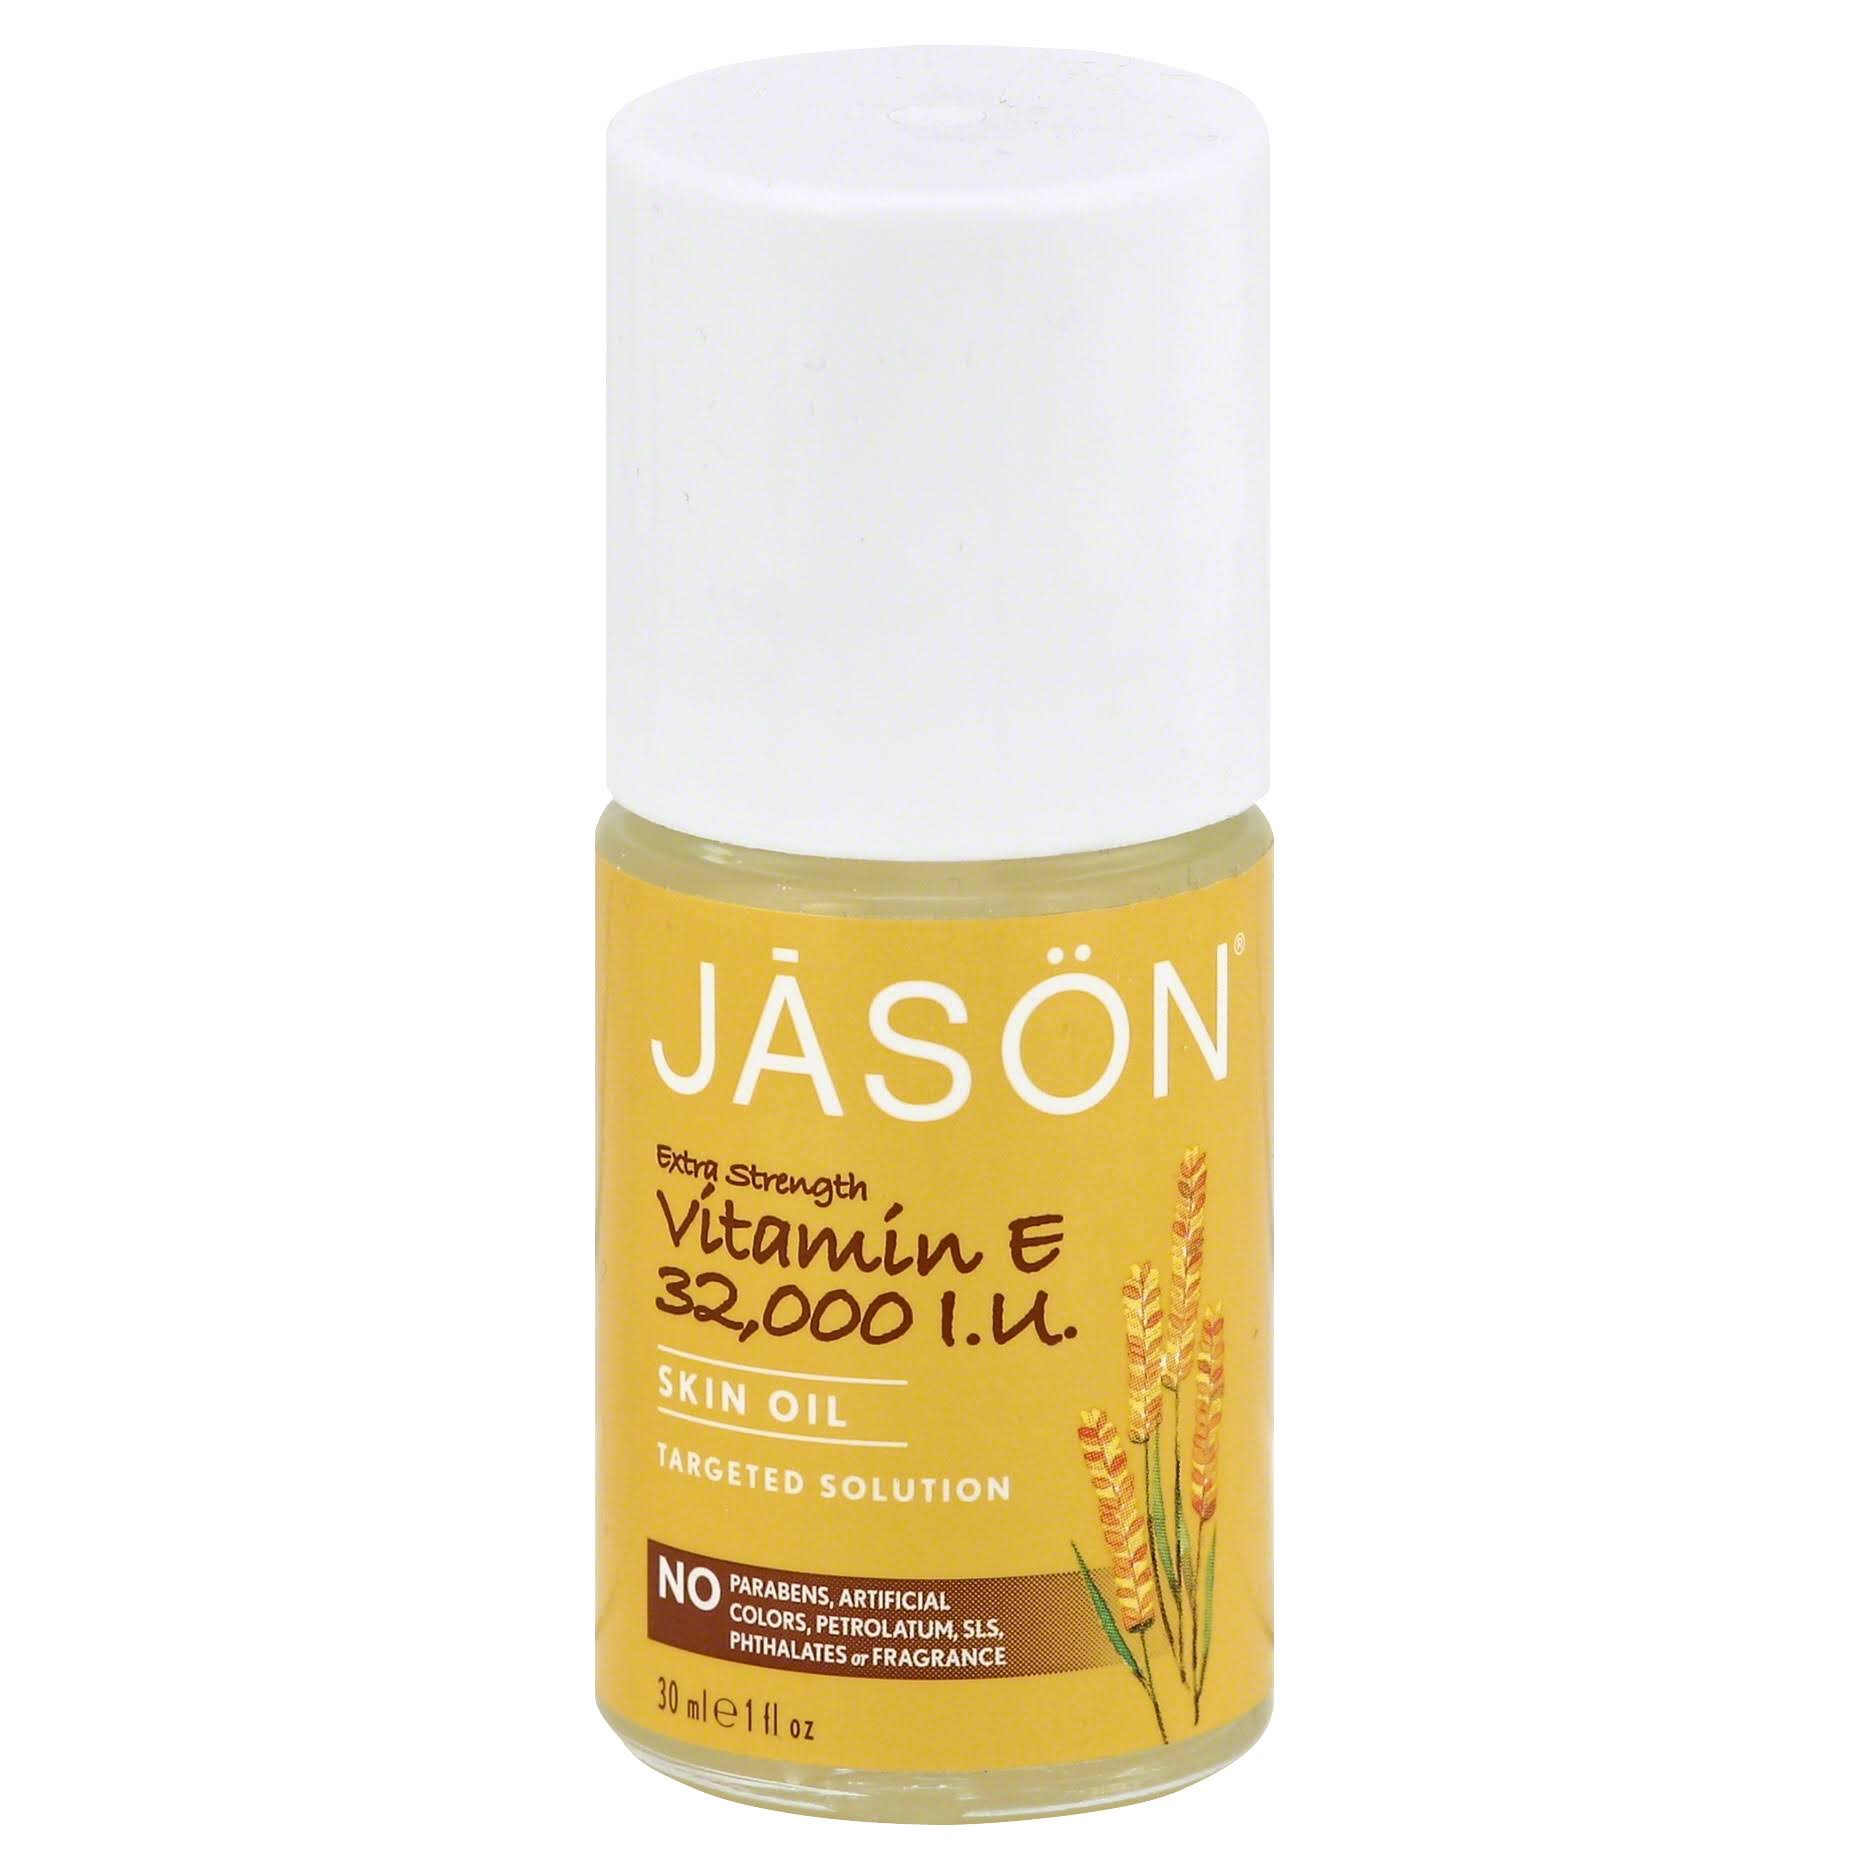 Jason Vitamin E Pure Beauty Oil - 32,000 IU